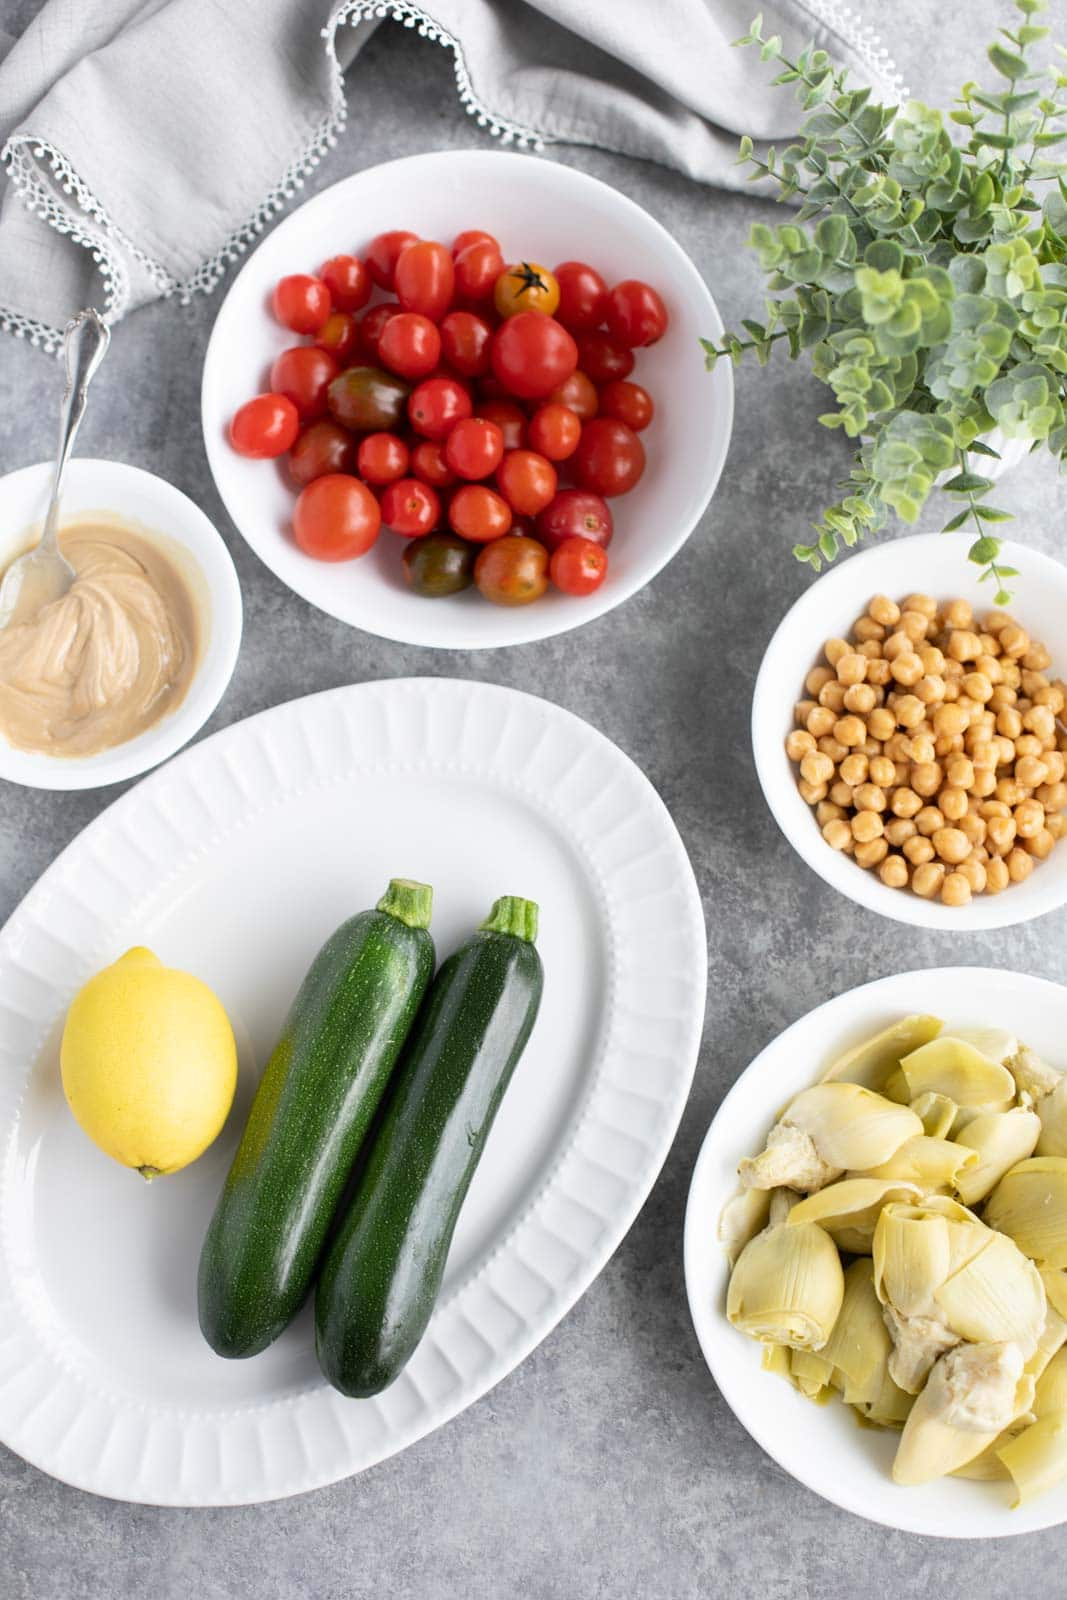 All the ingredients needed to make courgette salad on white plates with a gray background.